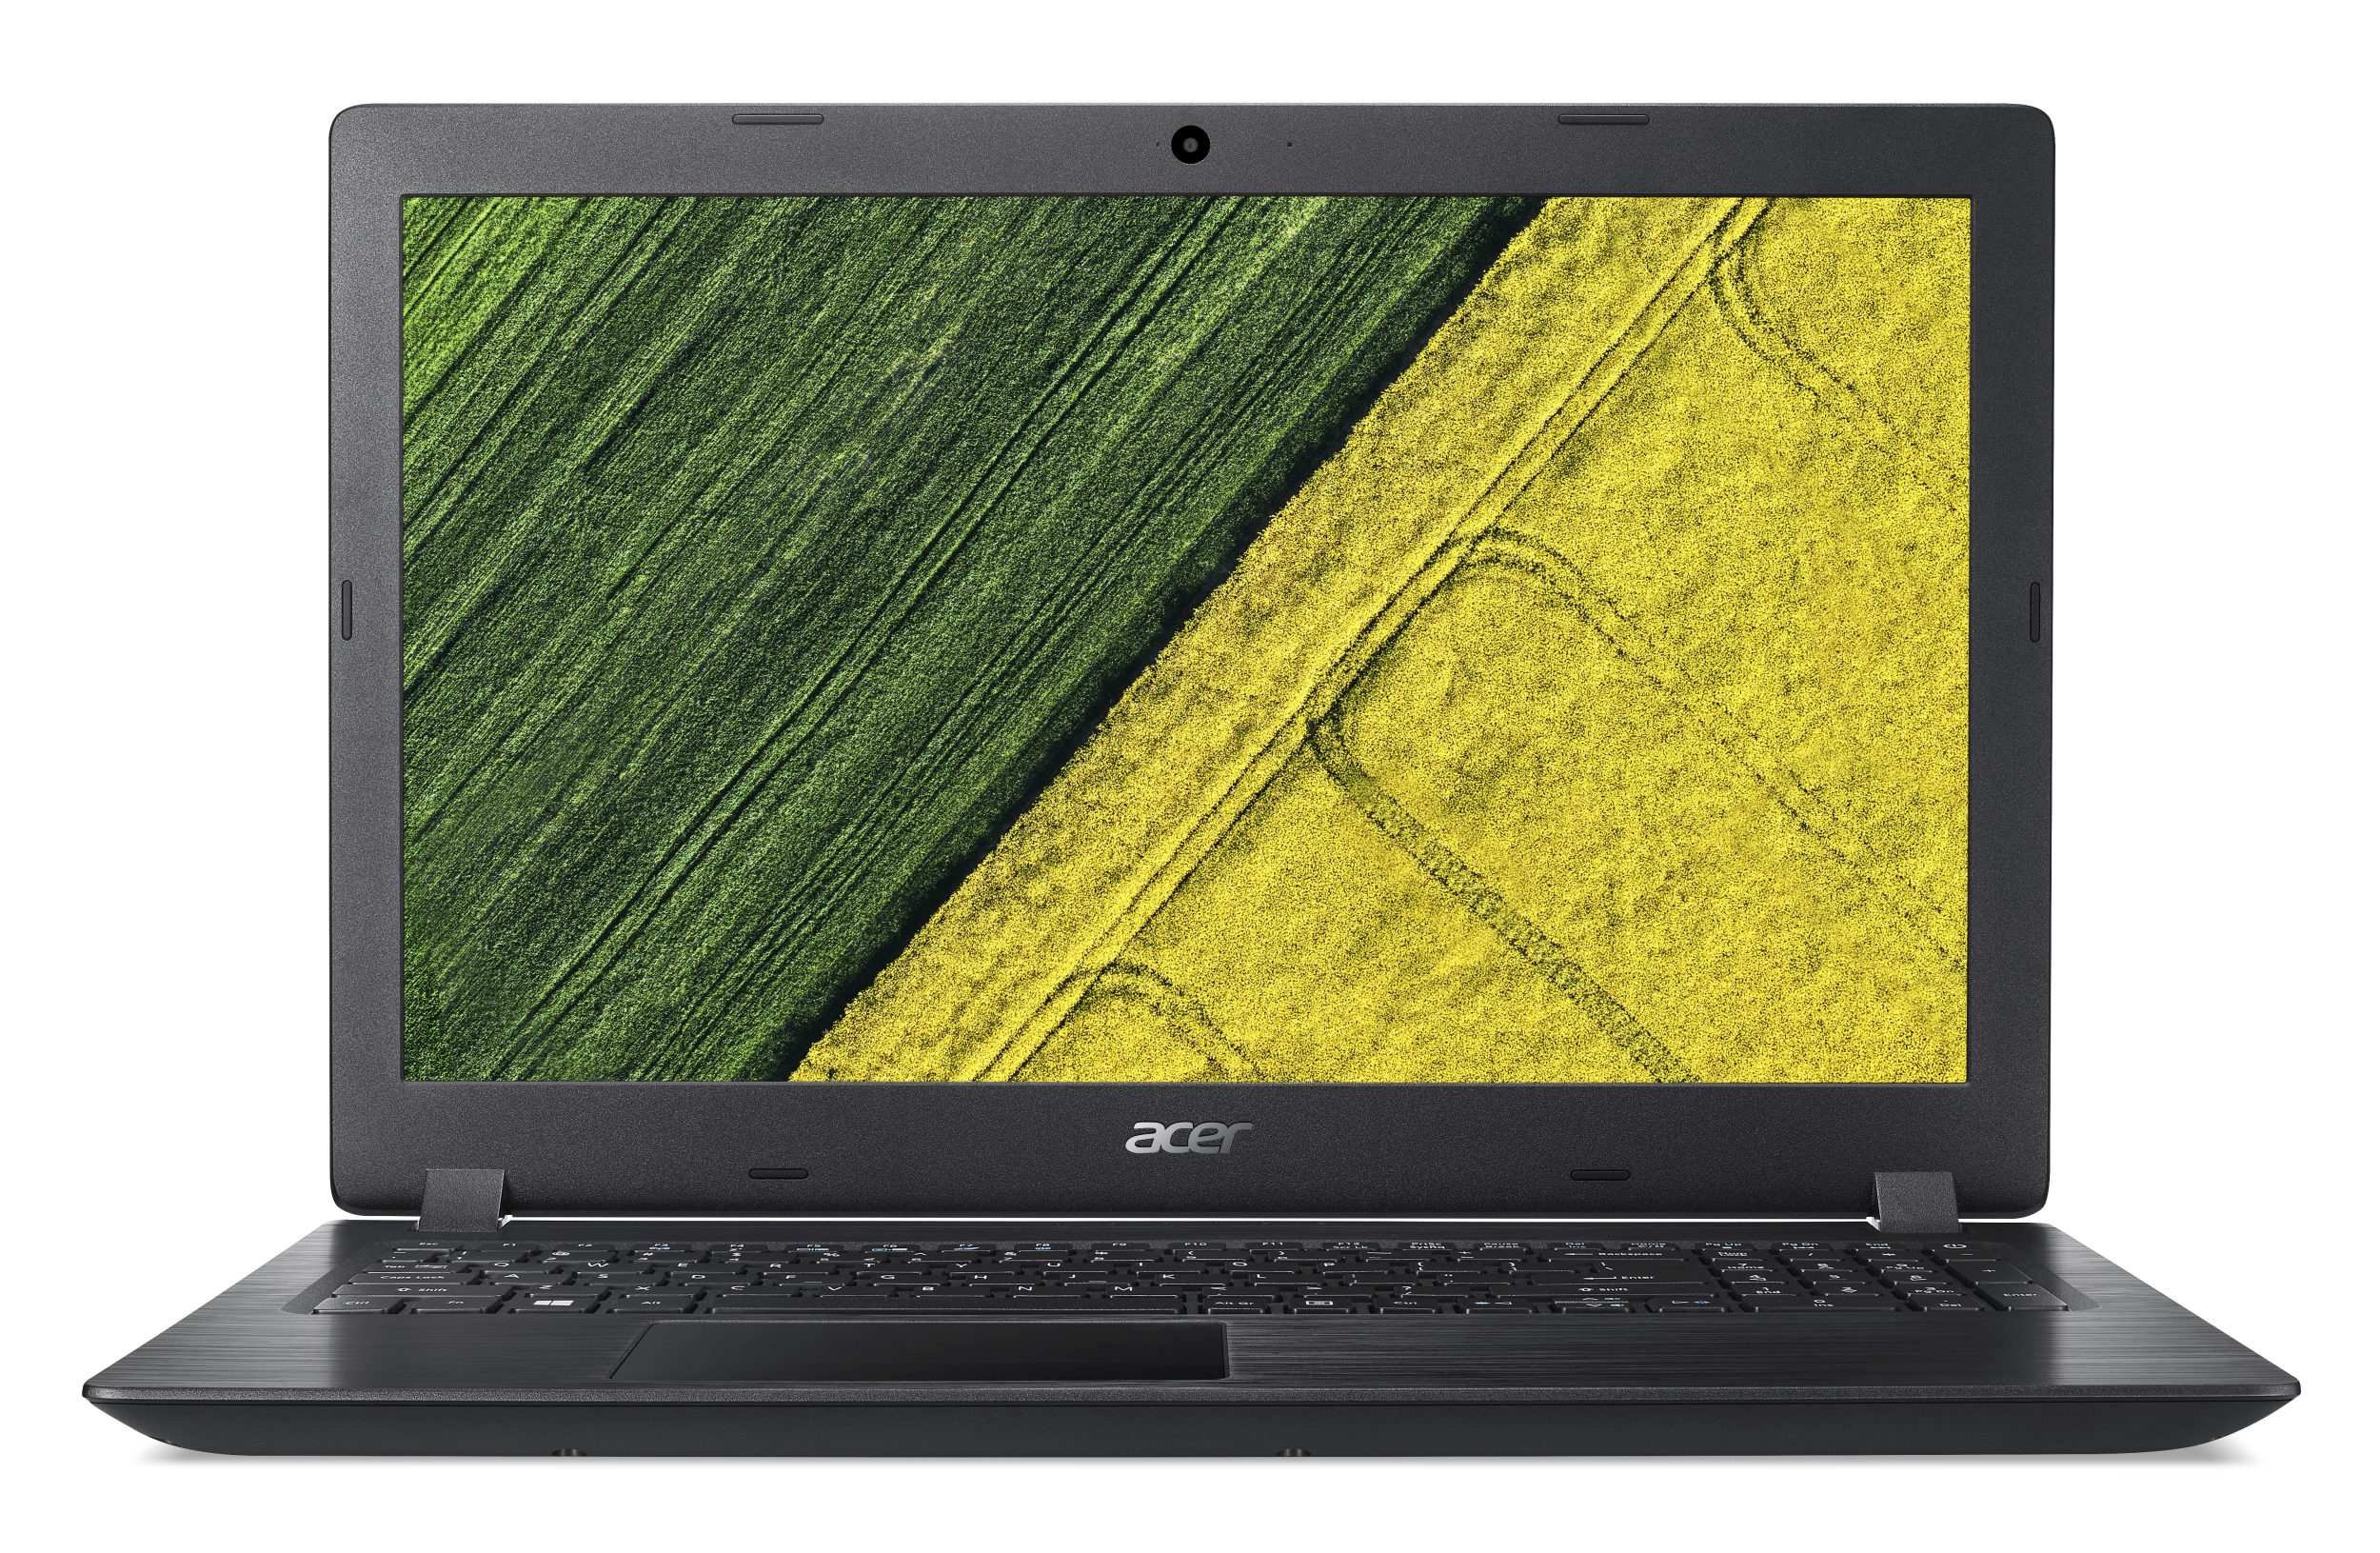 "Acer Aspire 3 (A315-21-22S3) AMD E2-9000/4GB+N/500GB+N/AMD Radeon R2 Graphics/15.6"" FHD LED matný/BT/W10 Home/Black"